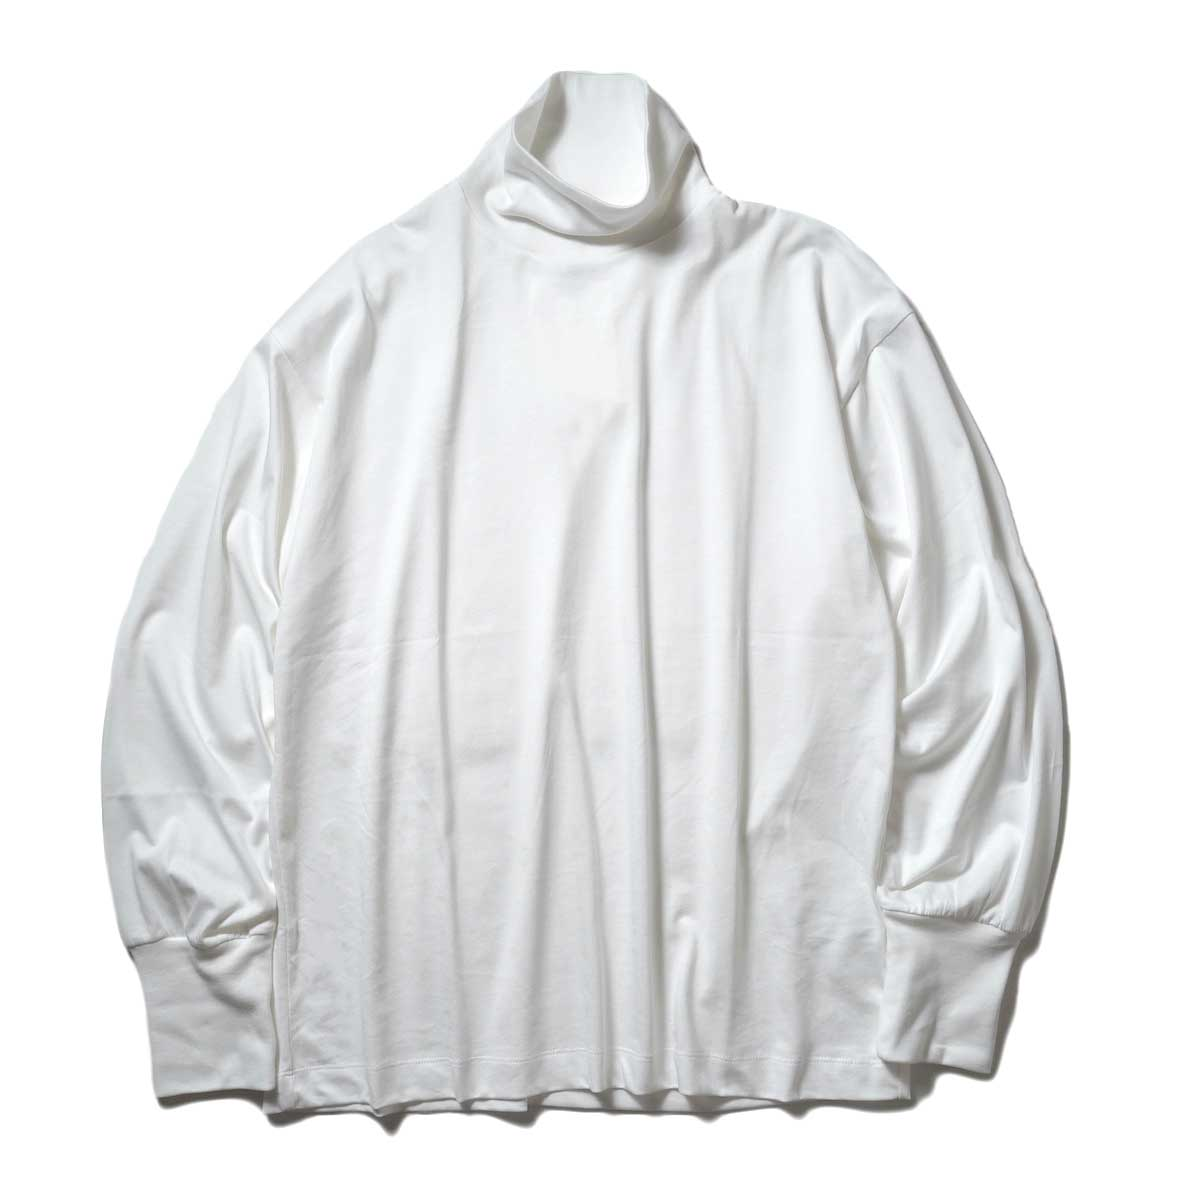 YLEVE / SOFT ORGANIC COTTON TURTLE (White) 正面